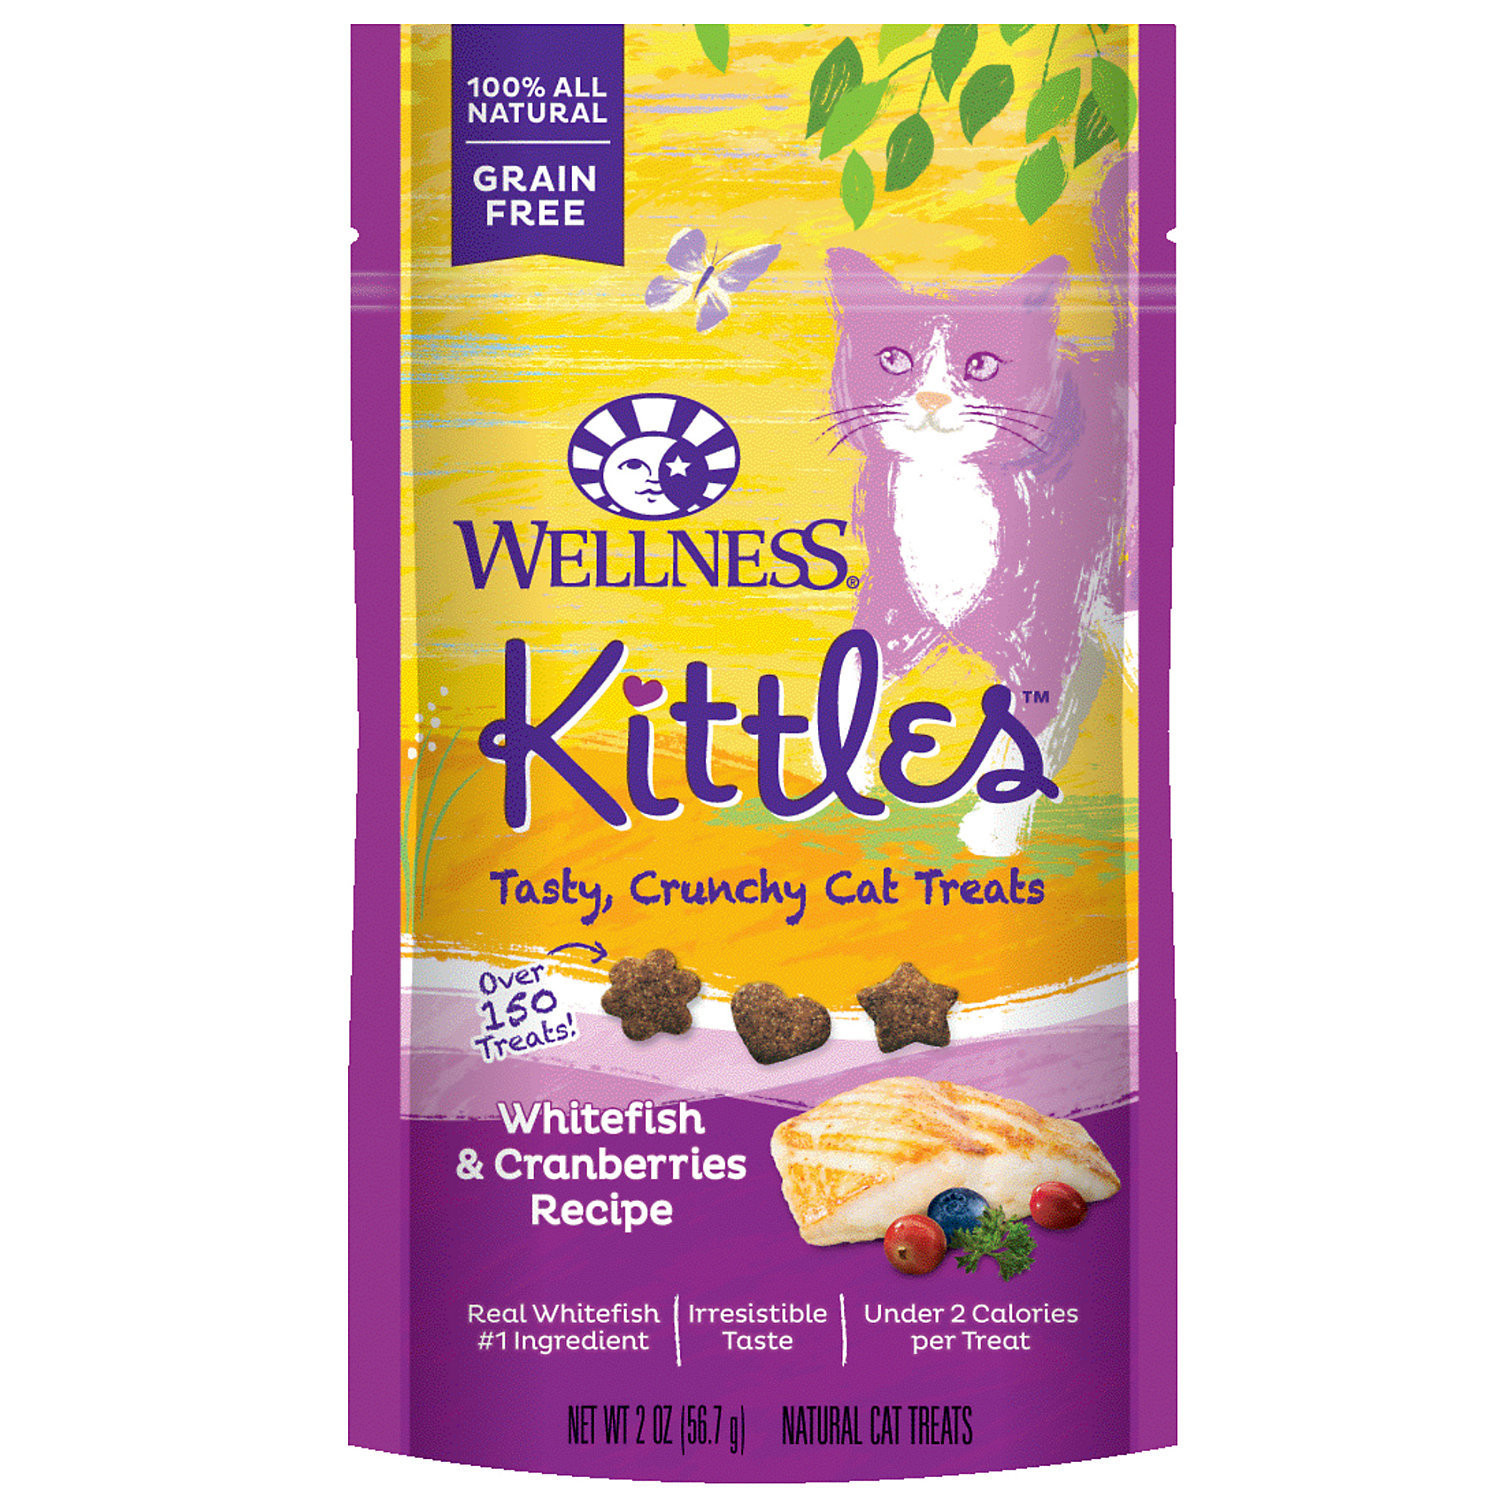 Wellness Kittles Grain Free Natural Cat Treats, Whitefish and Cranberries, 2 oz (5/19) (A.K5)